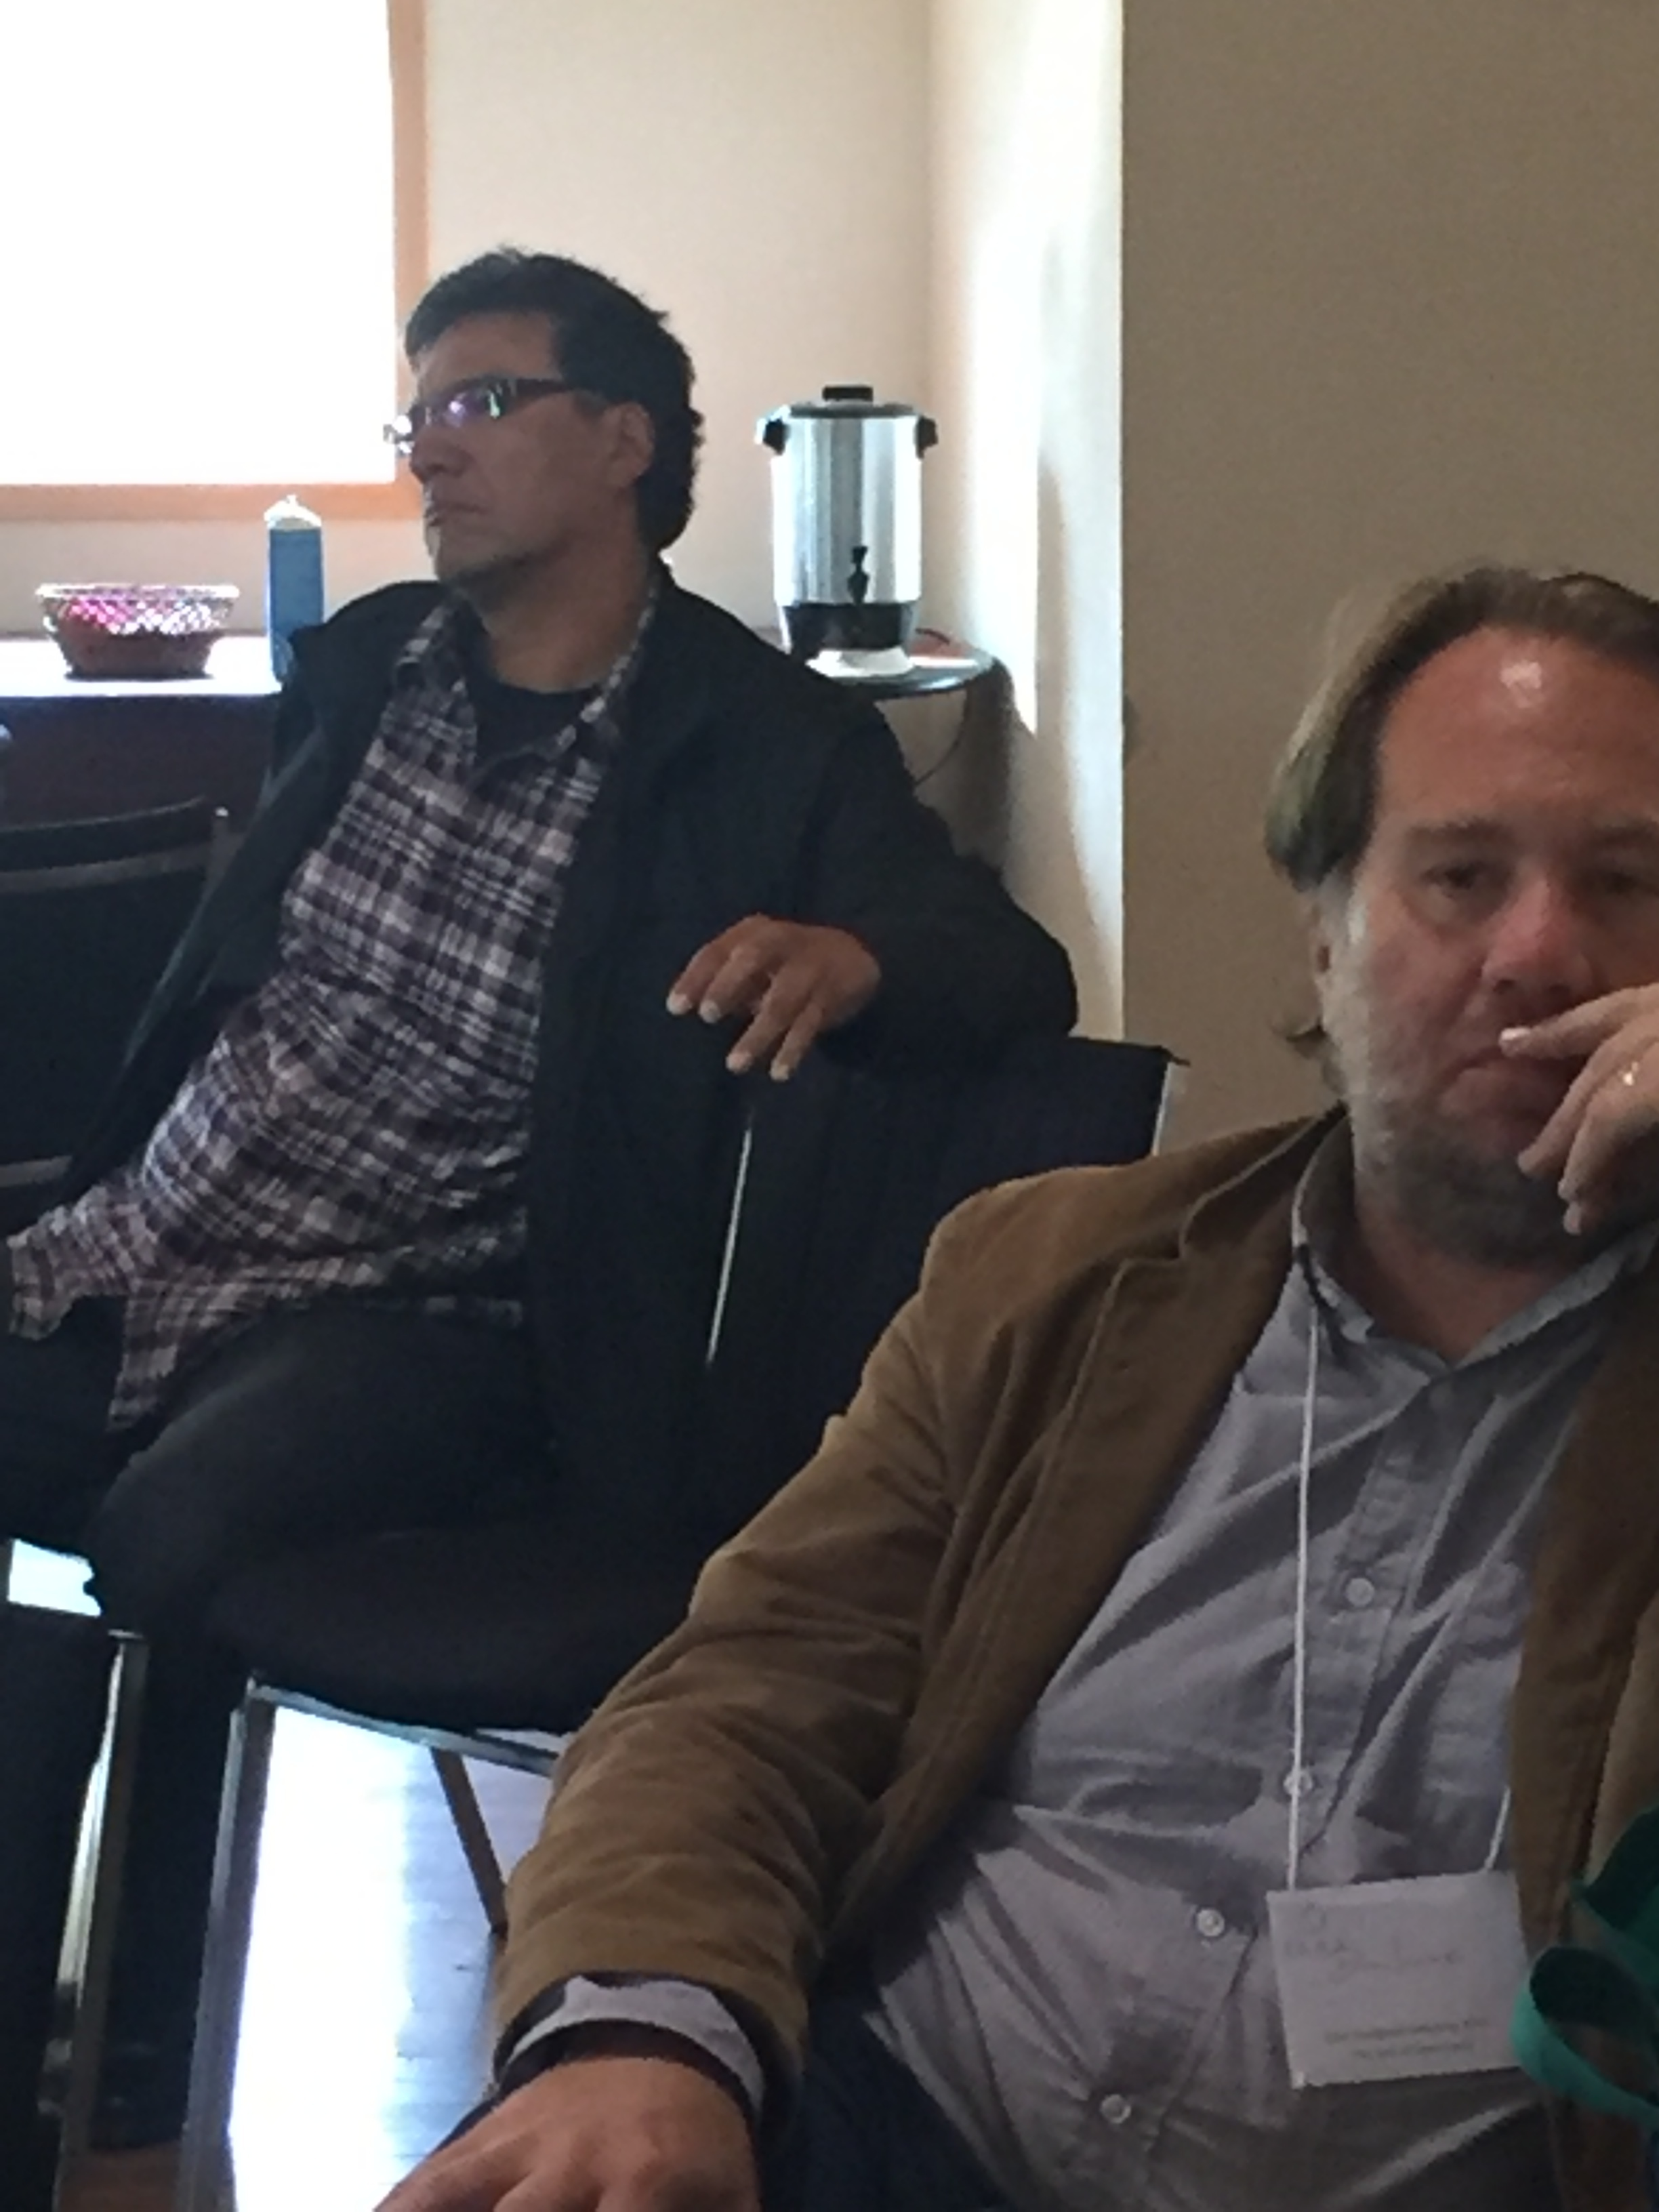 Rick monture and dean irvine, reflecting